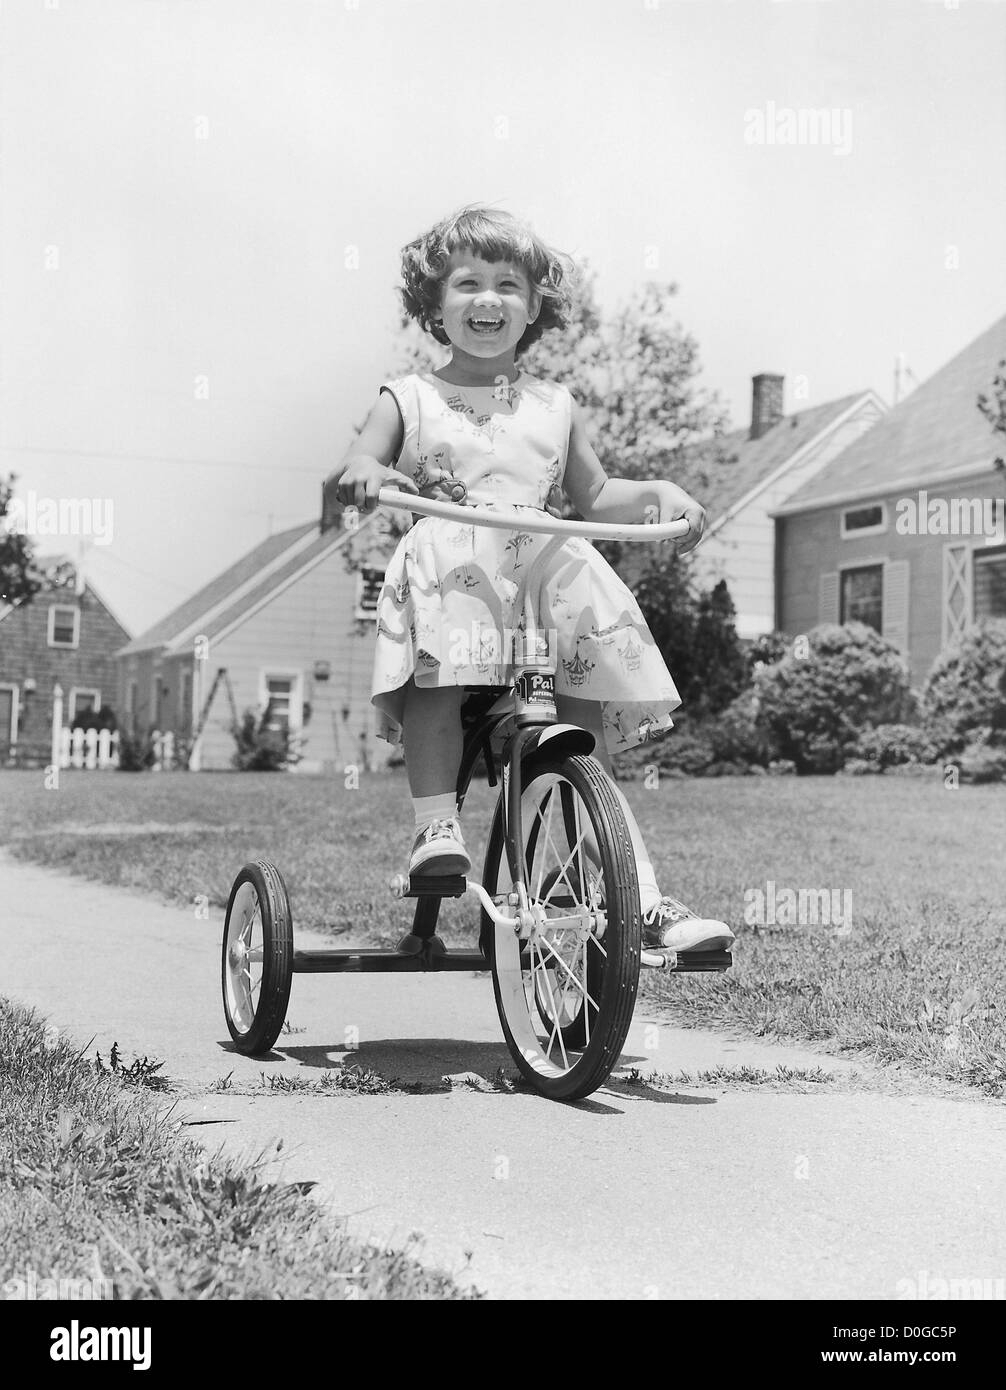 Smiling girl on tricycle - Stock Image